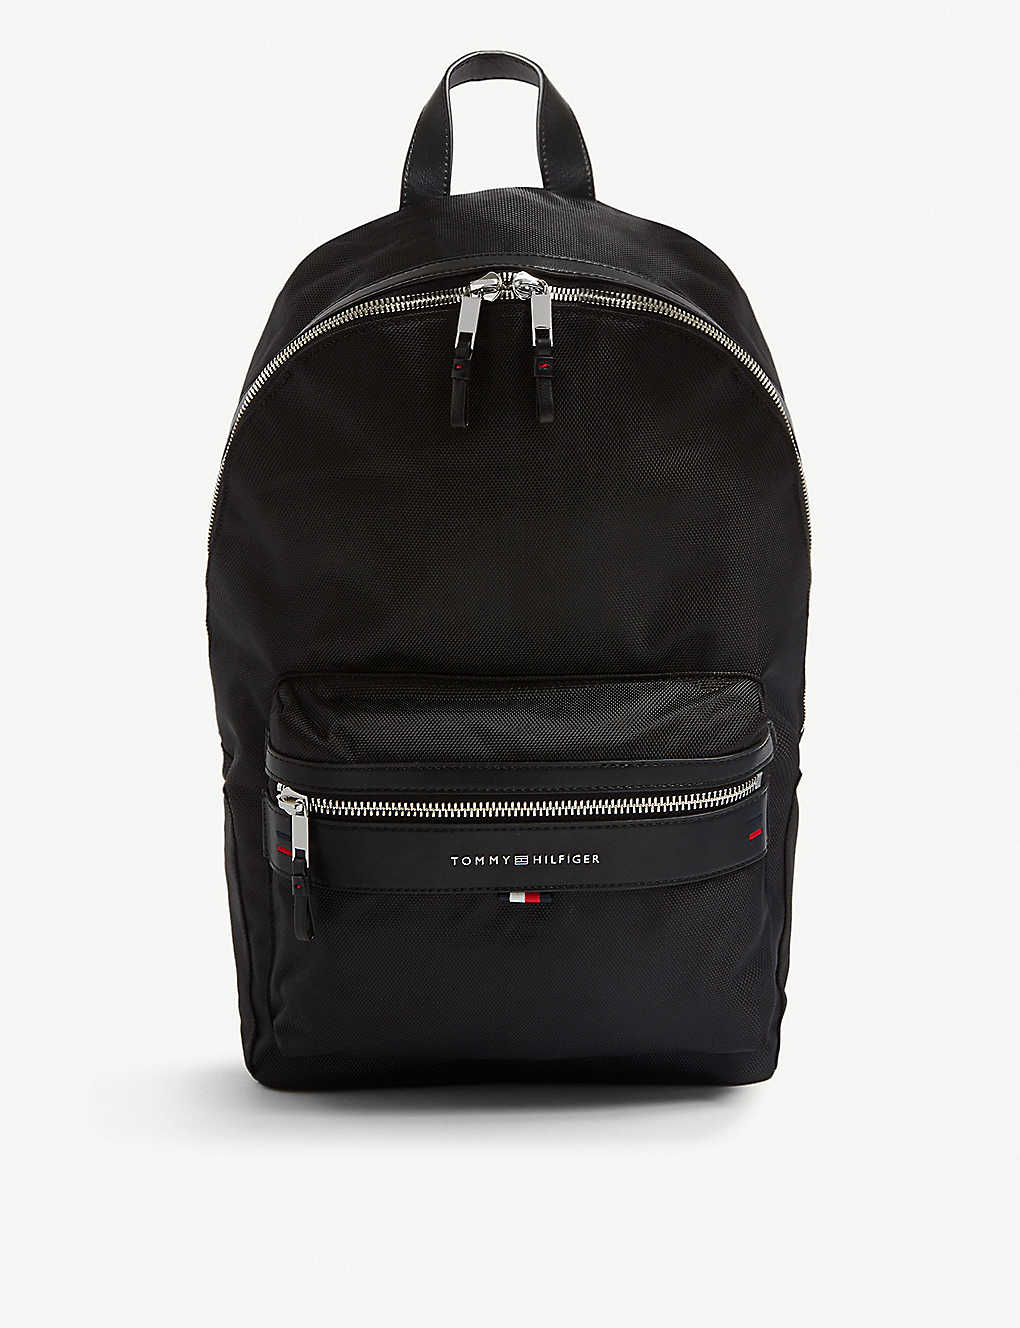 8f7ec933ef9e9 TOMMY HILFIGER - Elevated nylon backpack